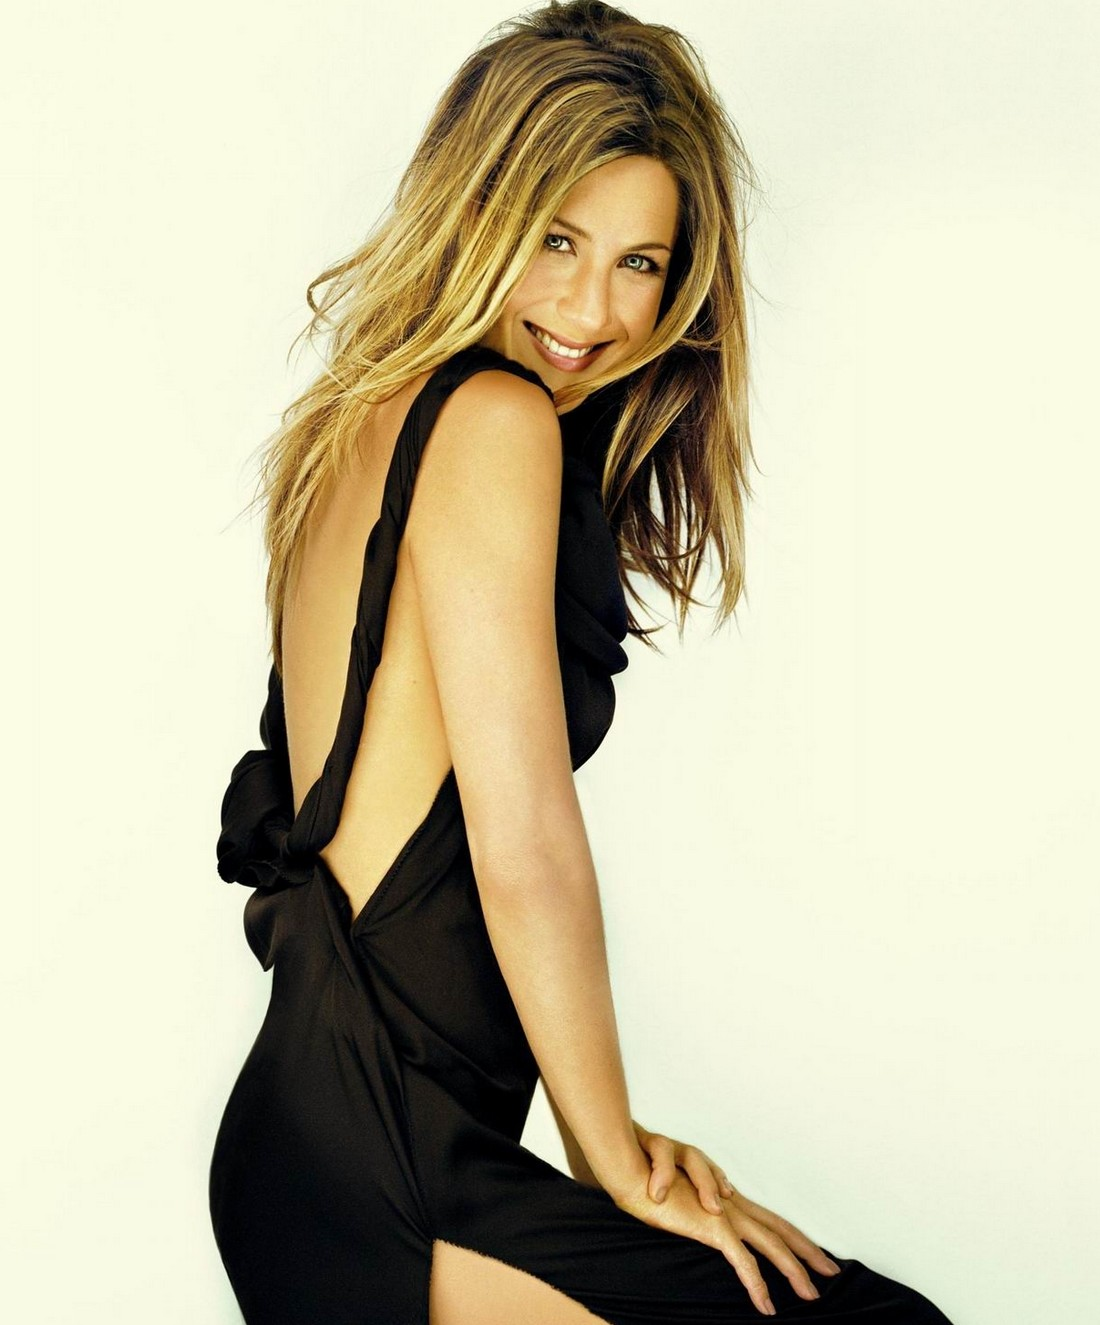 http://3.bp.blogspot.com/-p2uJ7OVE4rw/TeUE1LzempI/AAAAAAAAA1g/2HnKrnFrfXI/s1600/Jennifer-Aniston-2011%252BJennifer-Aniston-2011%252BJennifer-Aniston-2011%252BJennifer-Aniston-2011%252BJennifer-Aniston-2011%252BJennifer-Aniston-2011.jpg